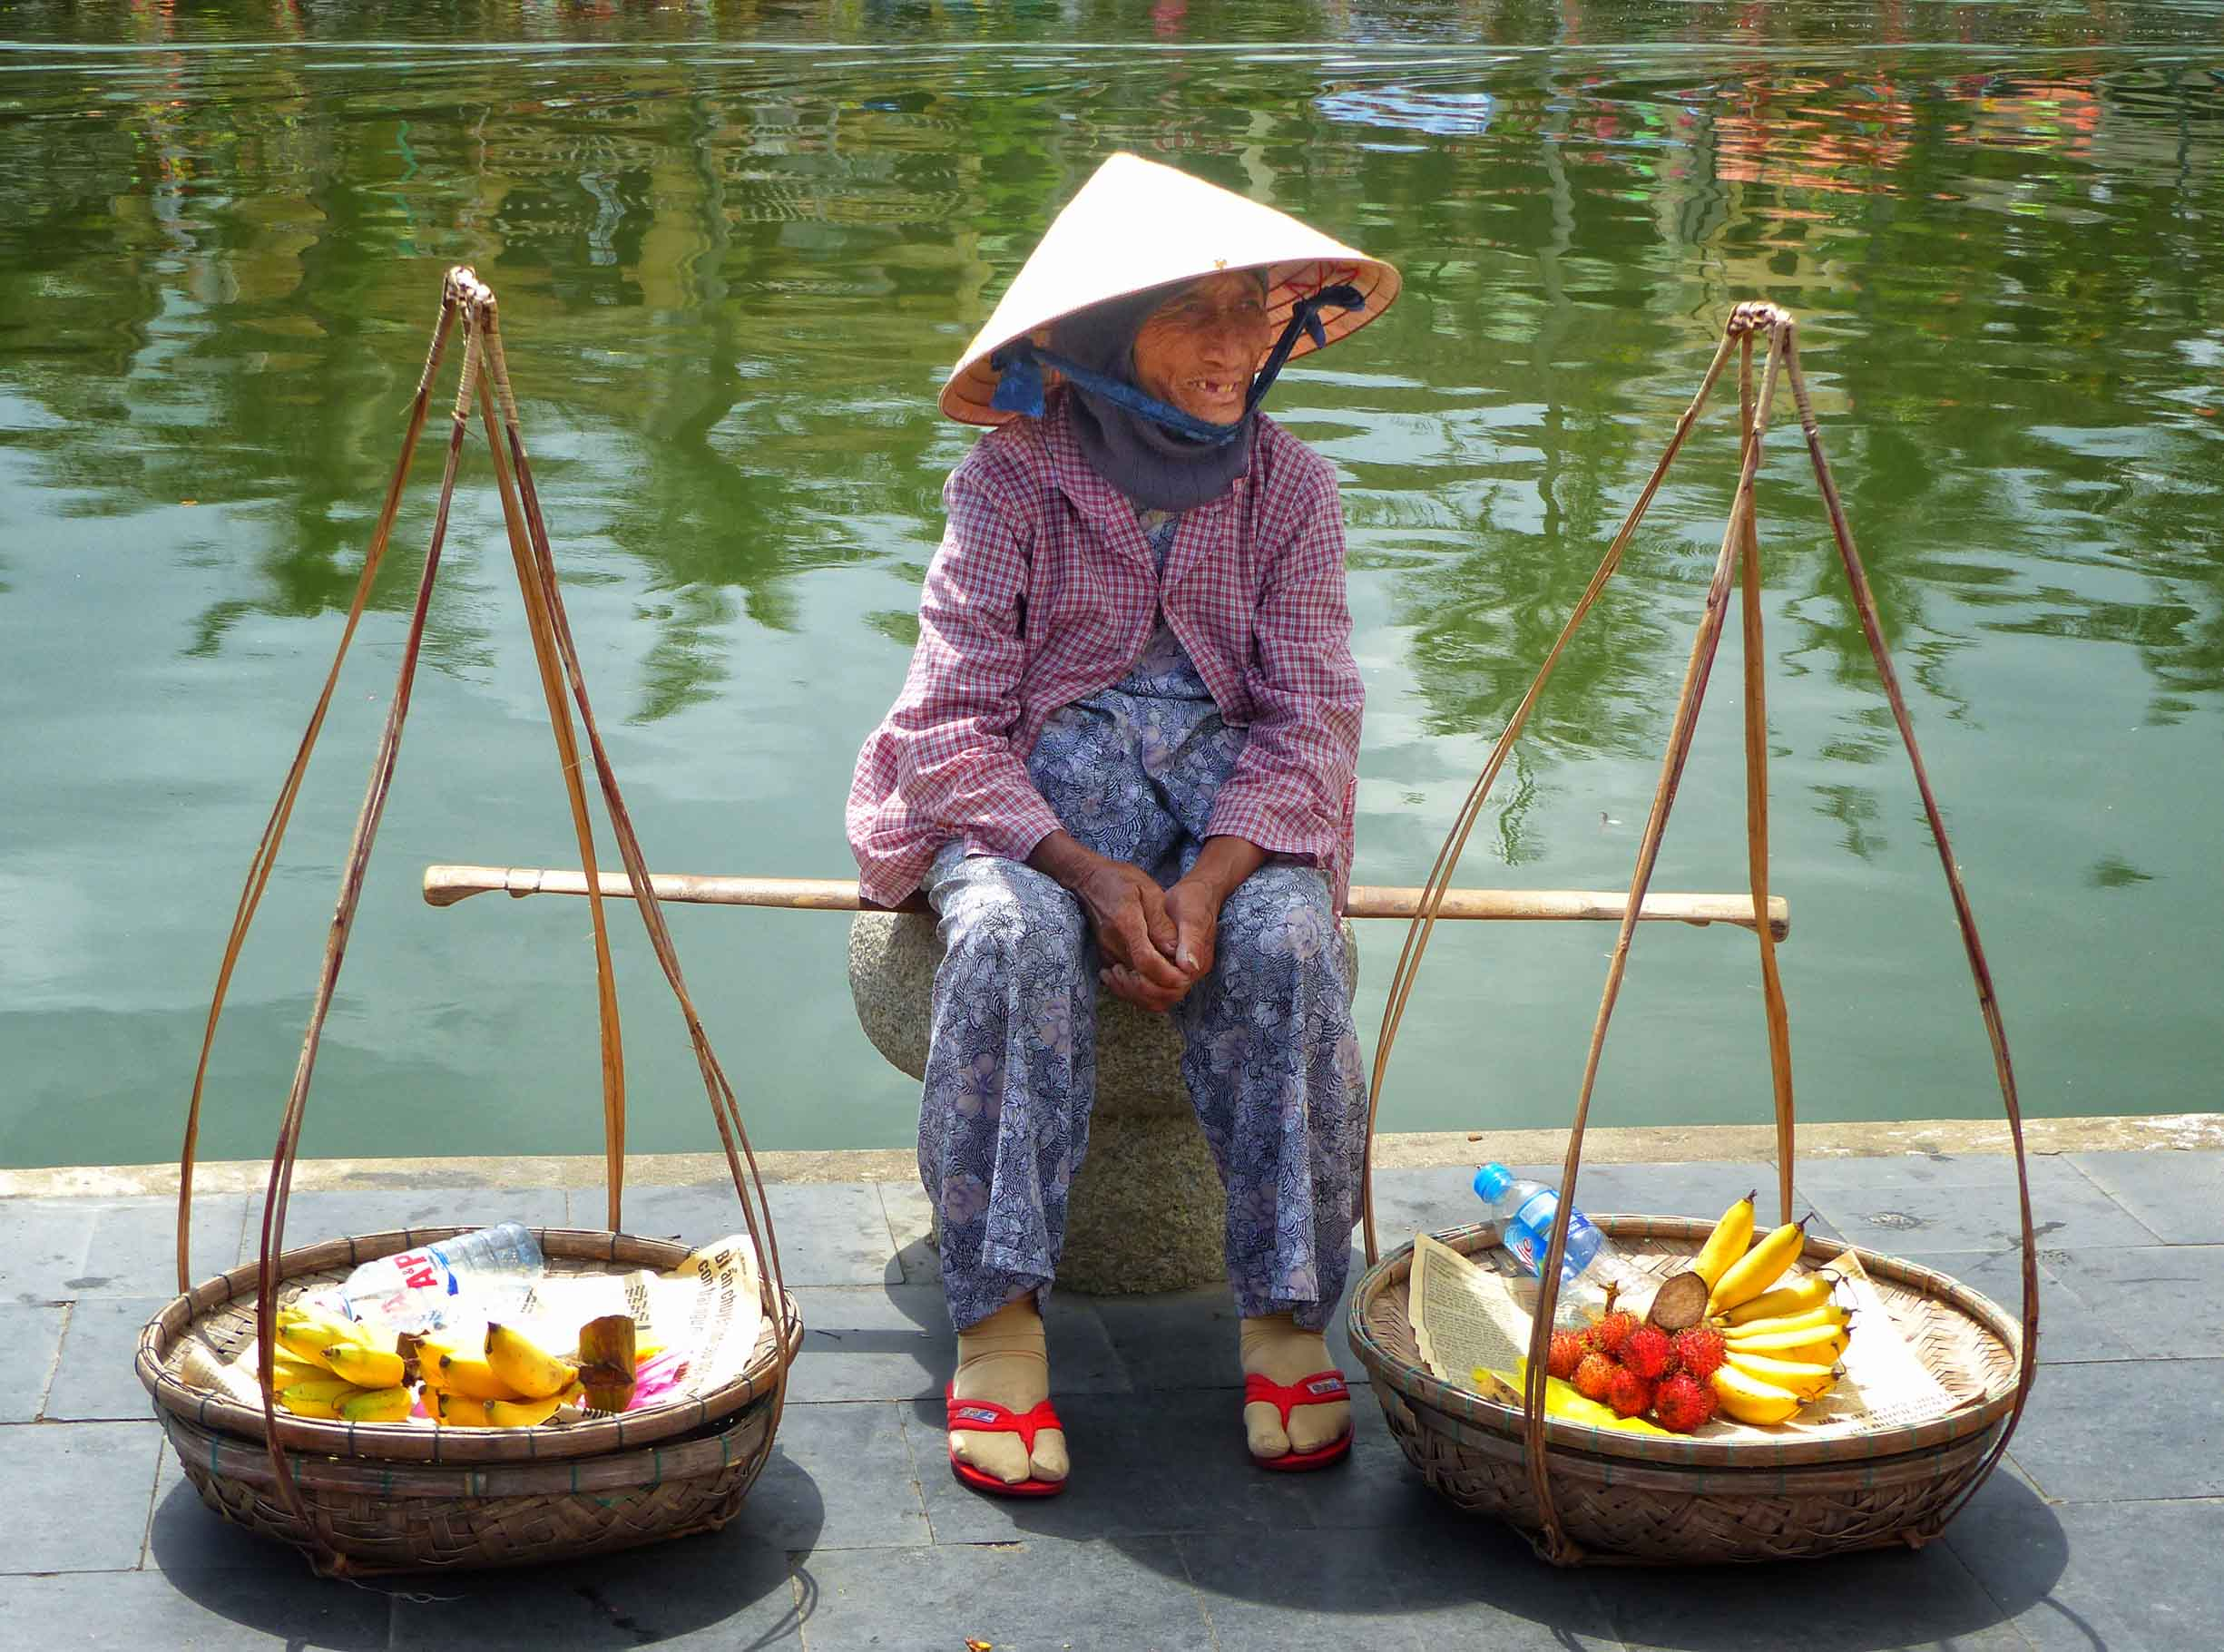 Old lady in conical hat with traditional baskets on yoke